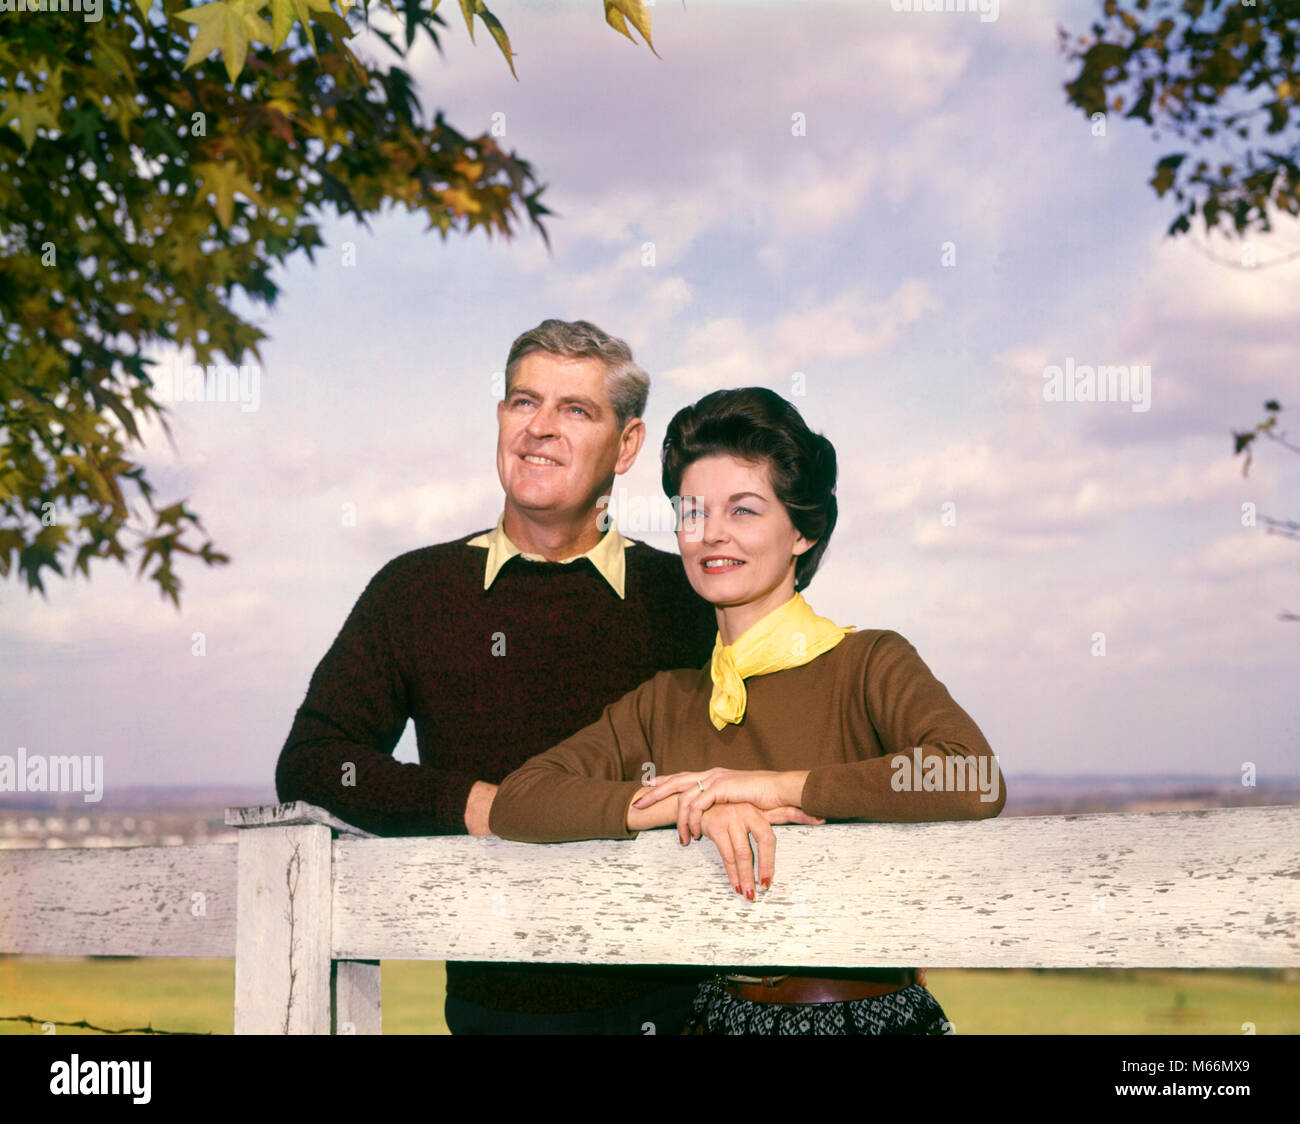 1950s 1960s SMILING MIDDLE AGE COUPLE OUTDOORS IN AUTUMN LEANING ON FENCE MAN WOMAN COUPLES MEN WOMEN - kp574 HAR001 - Stock Image